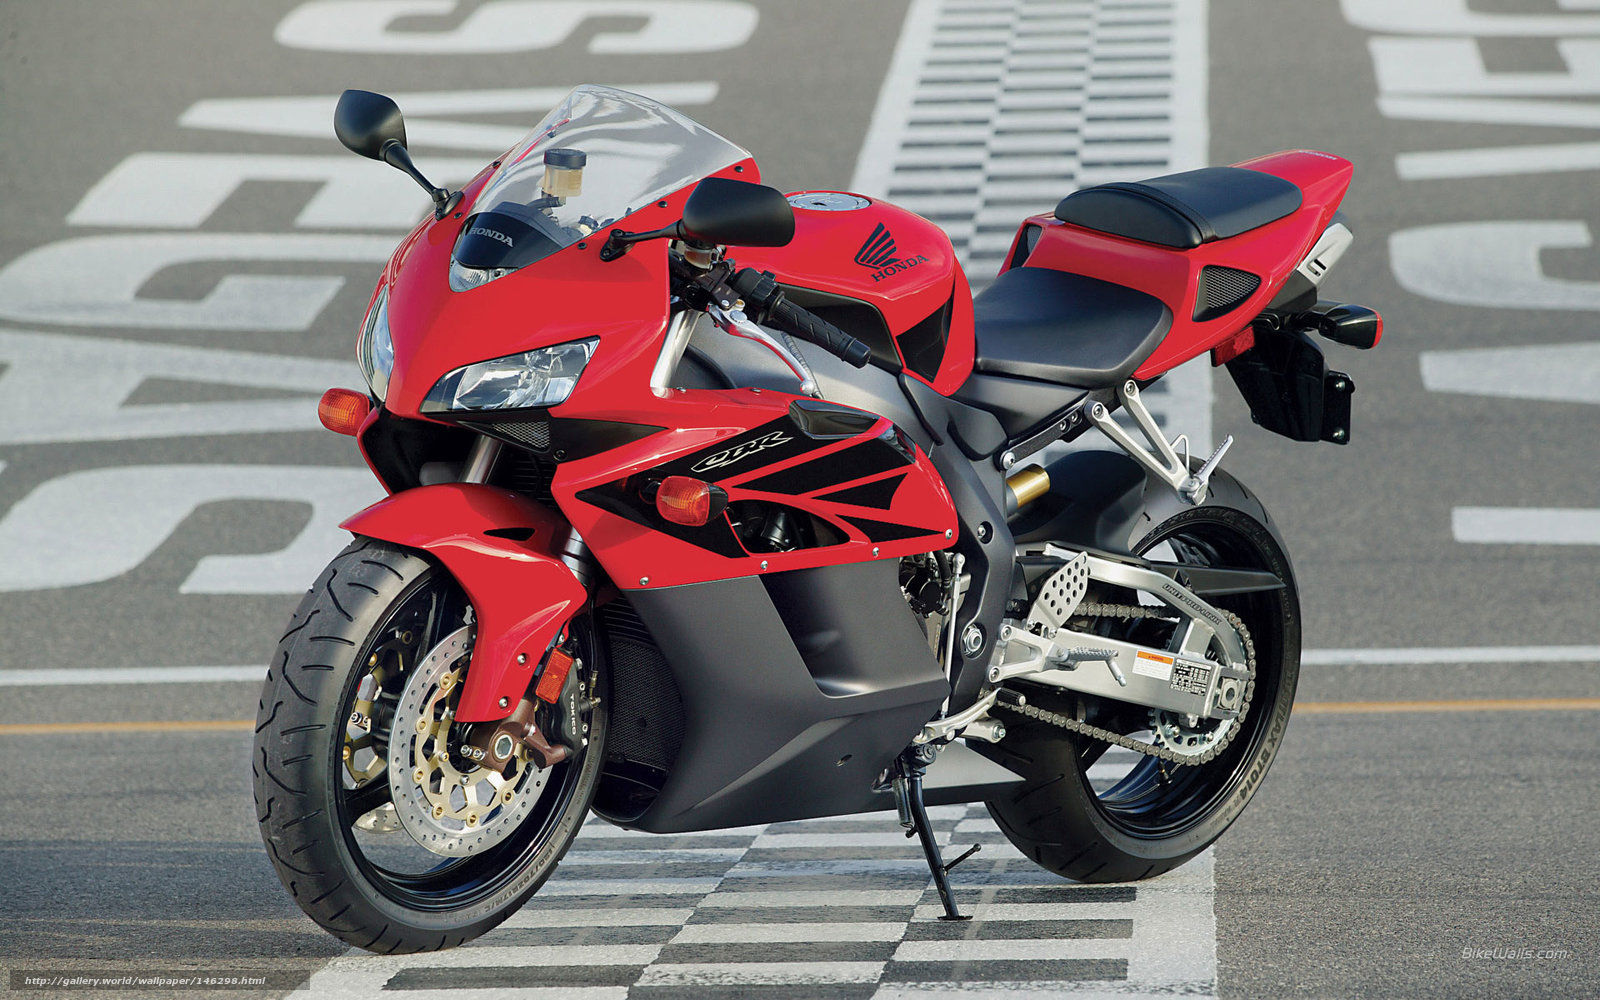 Download Wallpaper Honda Sport Cbr1000rr Cbr1000rr 2004